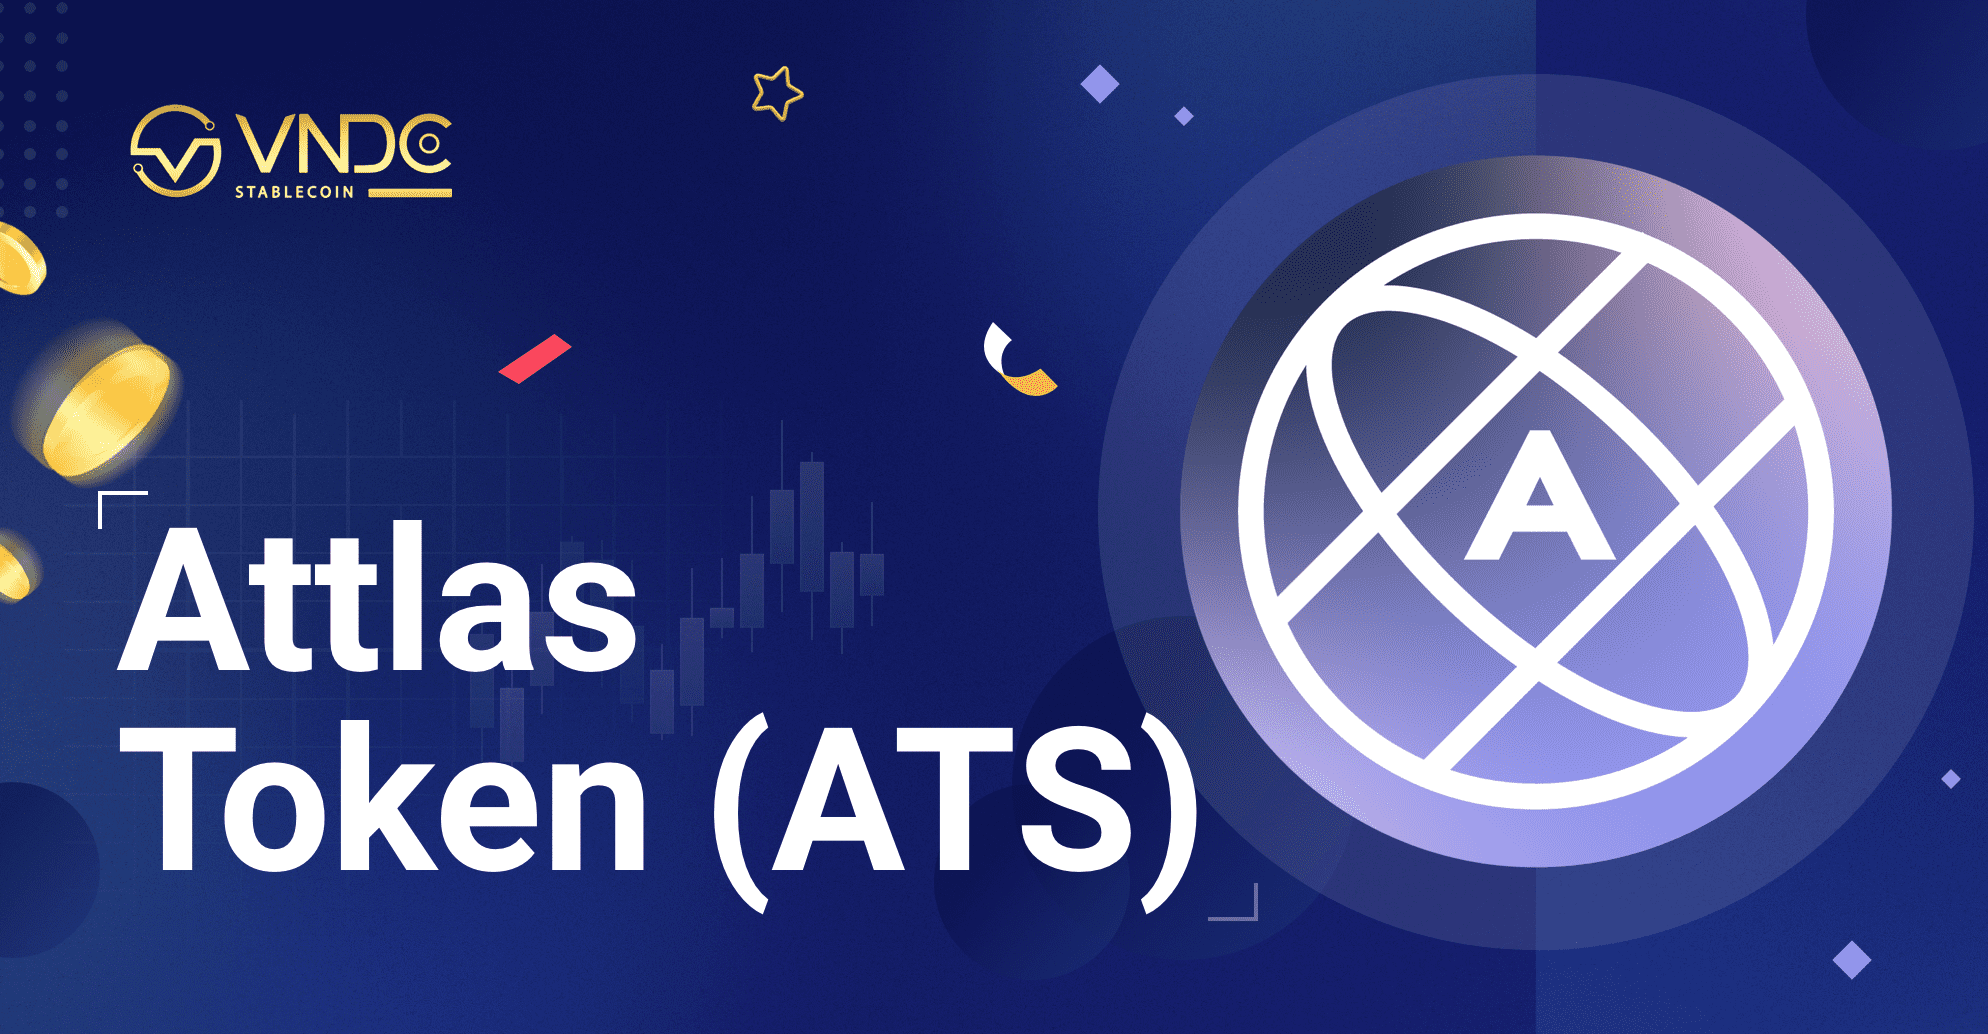 ATS Token (ATS) is officially listed on VNDC Wallet